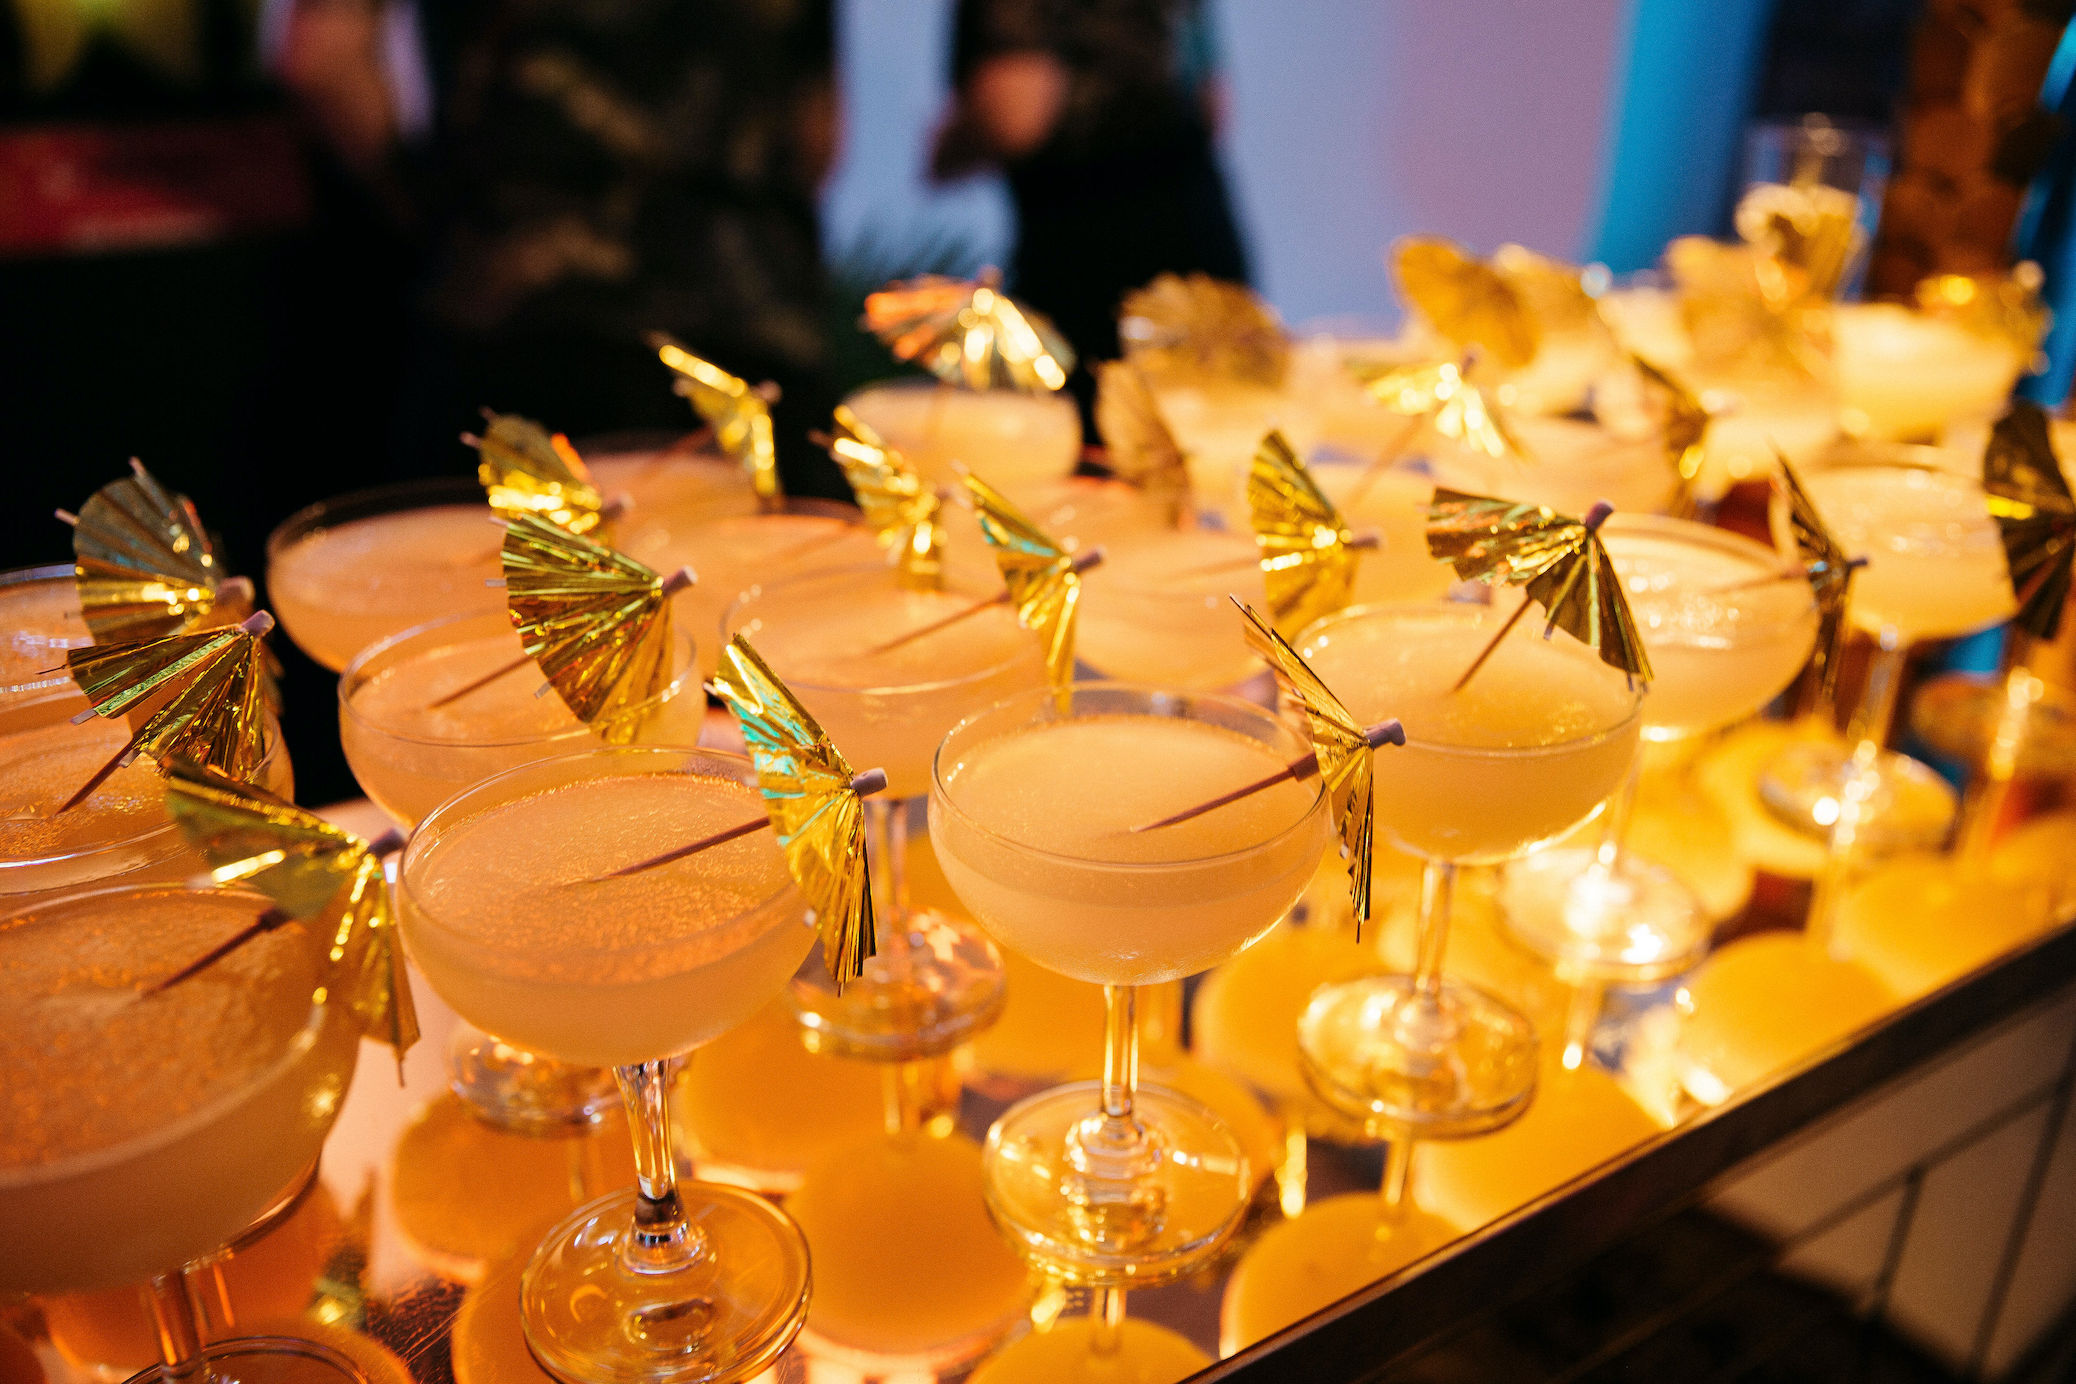 Frozen margaritas for wedding guests